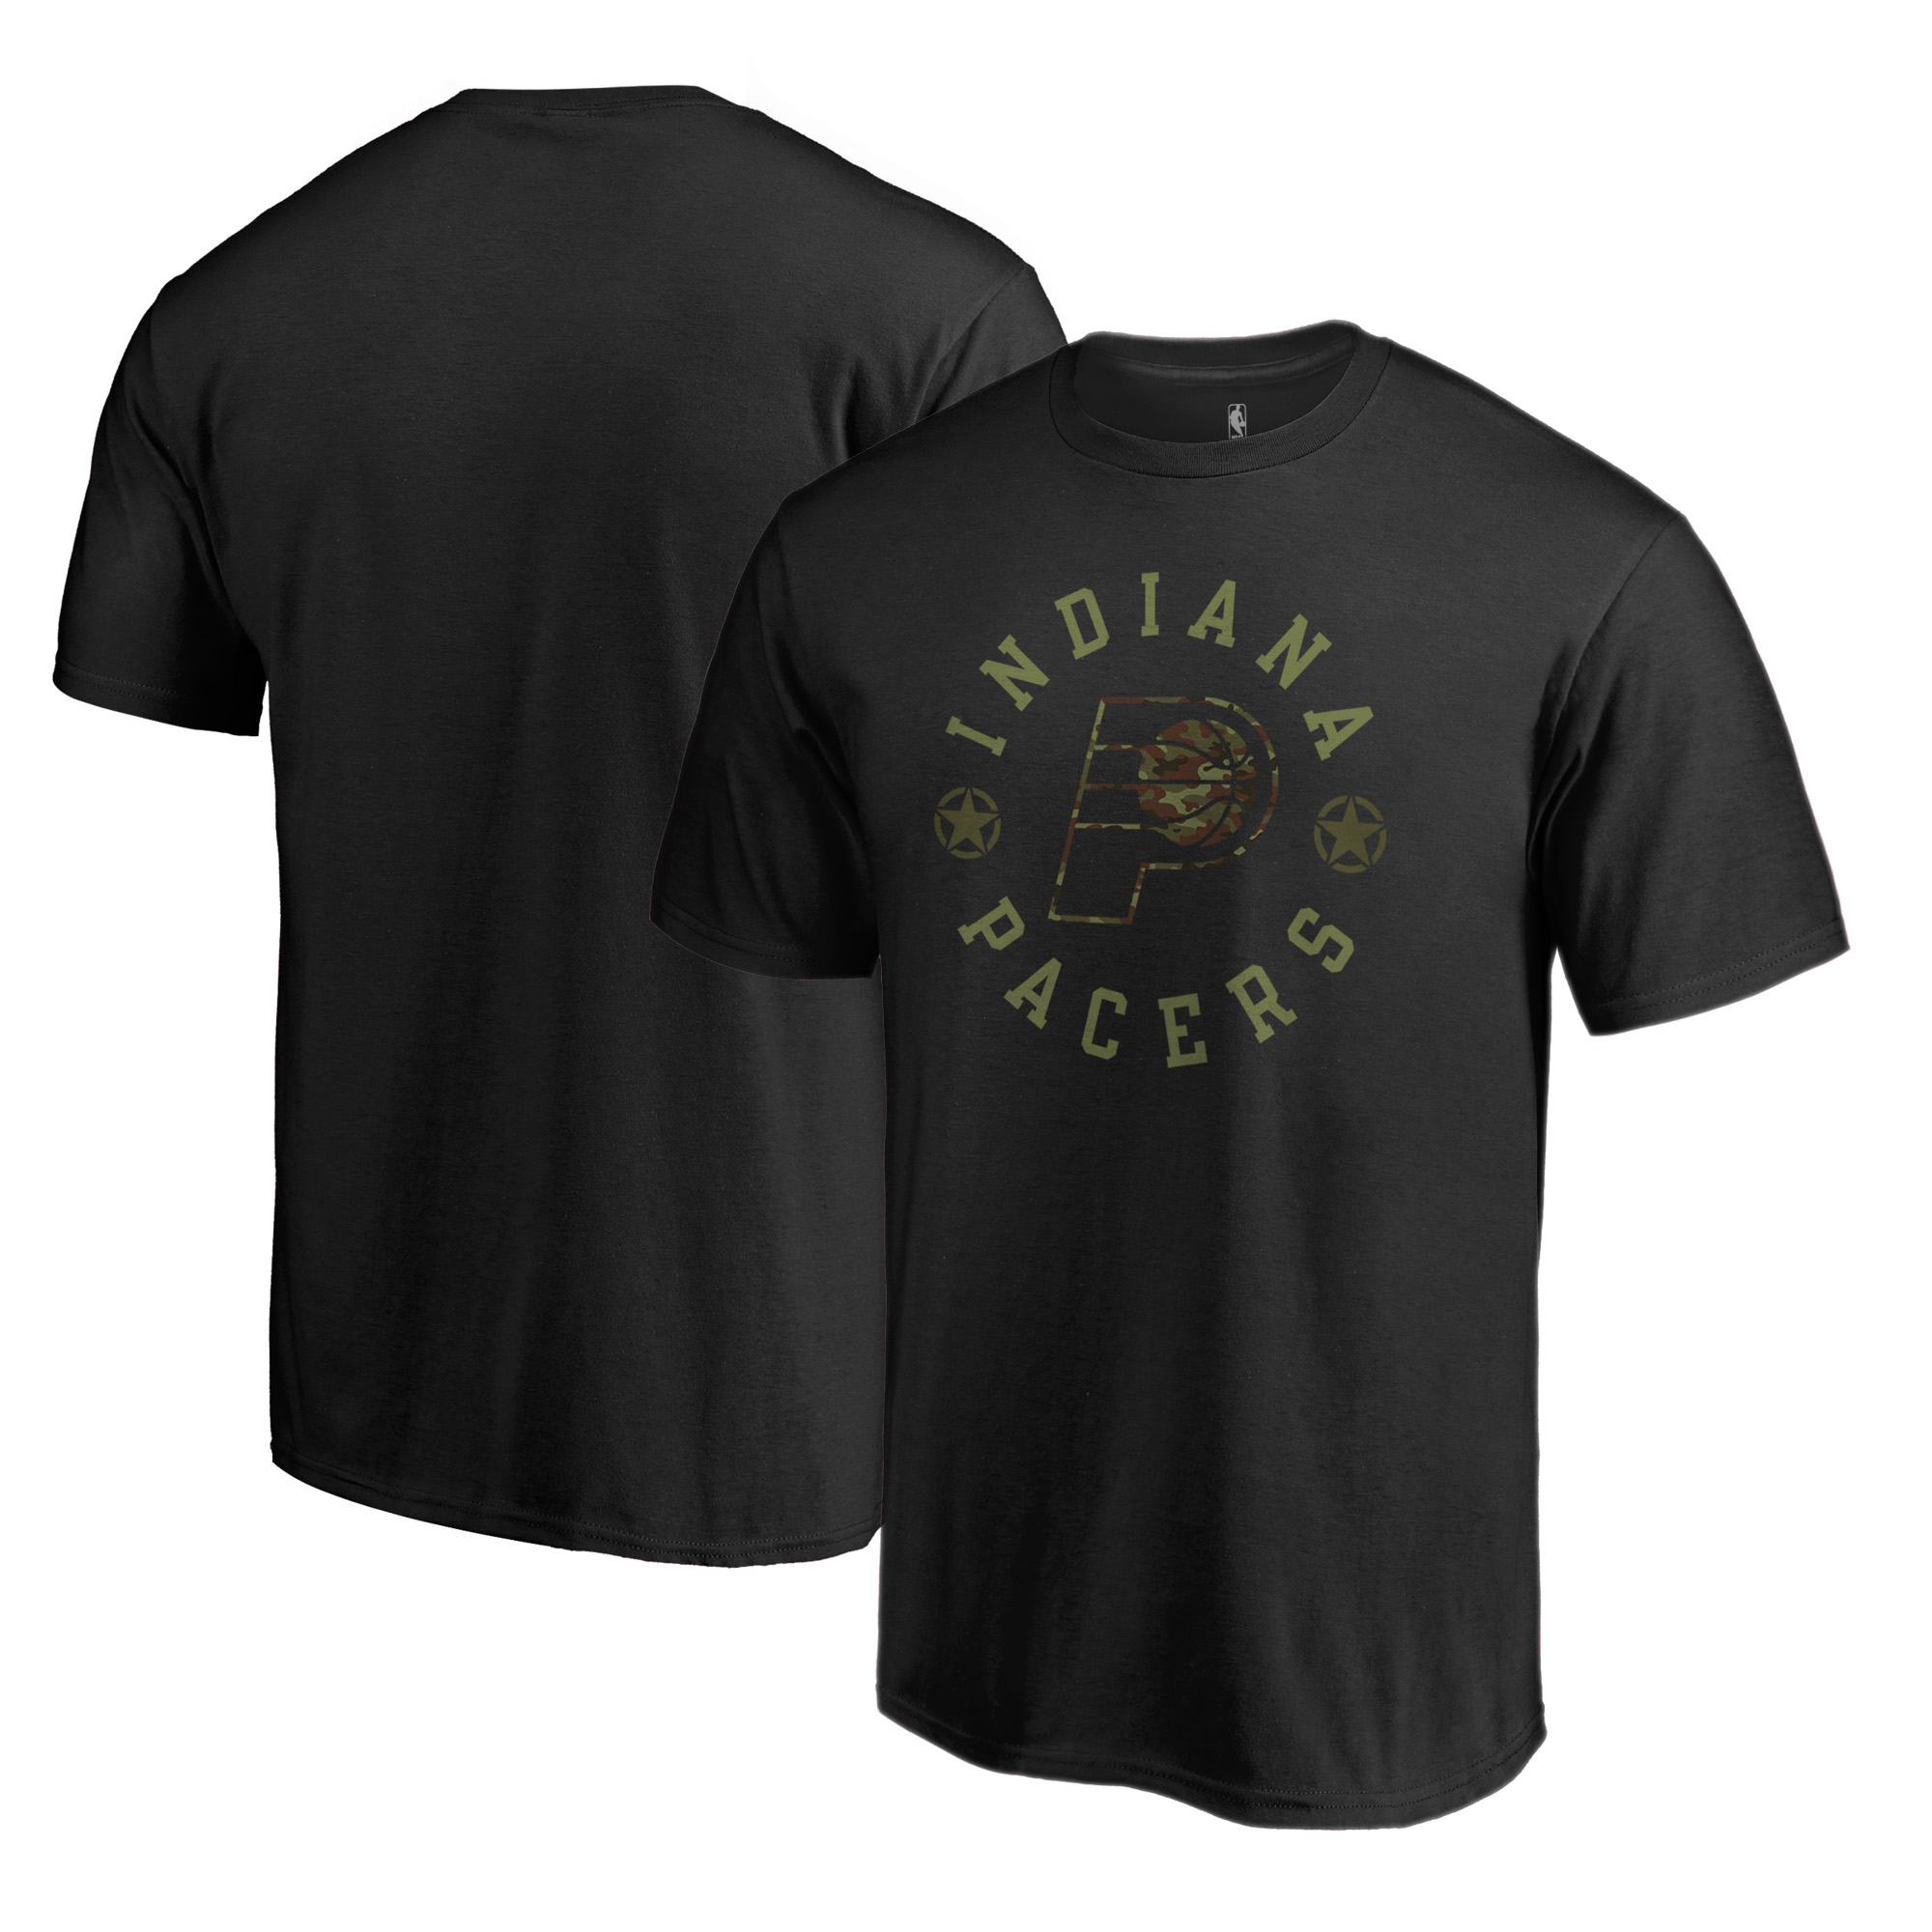 Indiana Pacers Fanatics Branded Liberty Big and Tall T-Shirt - Black